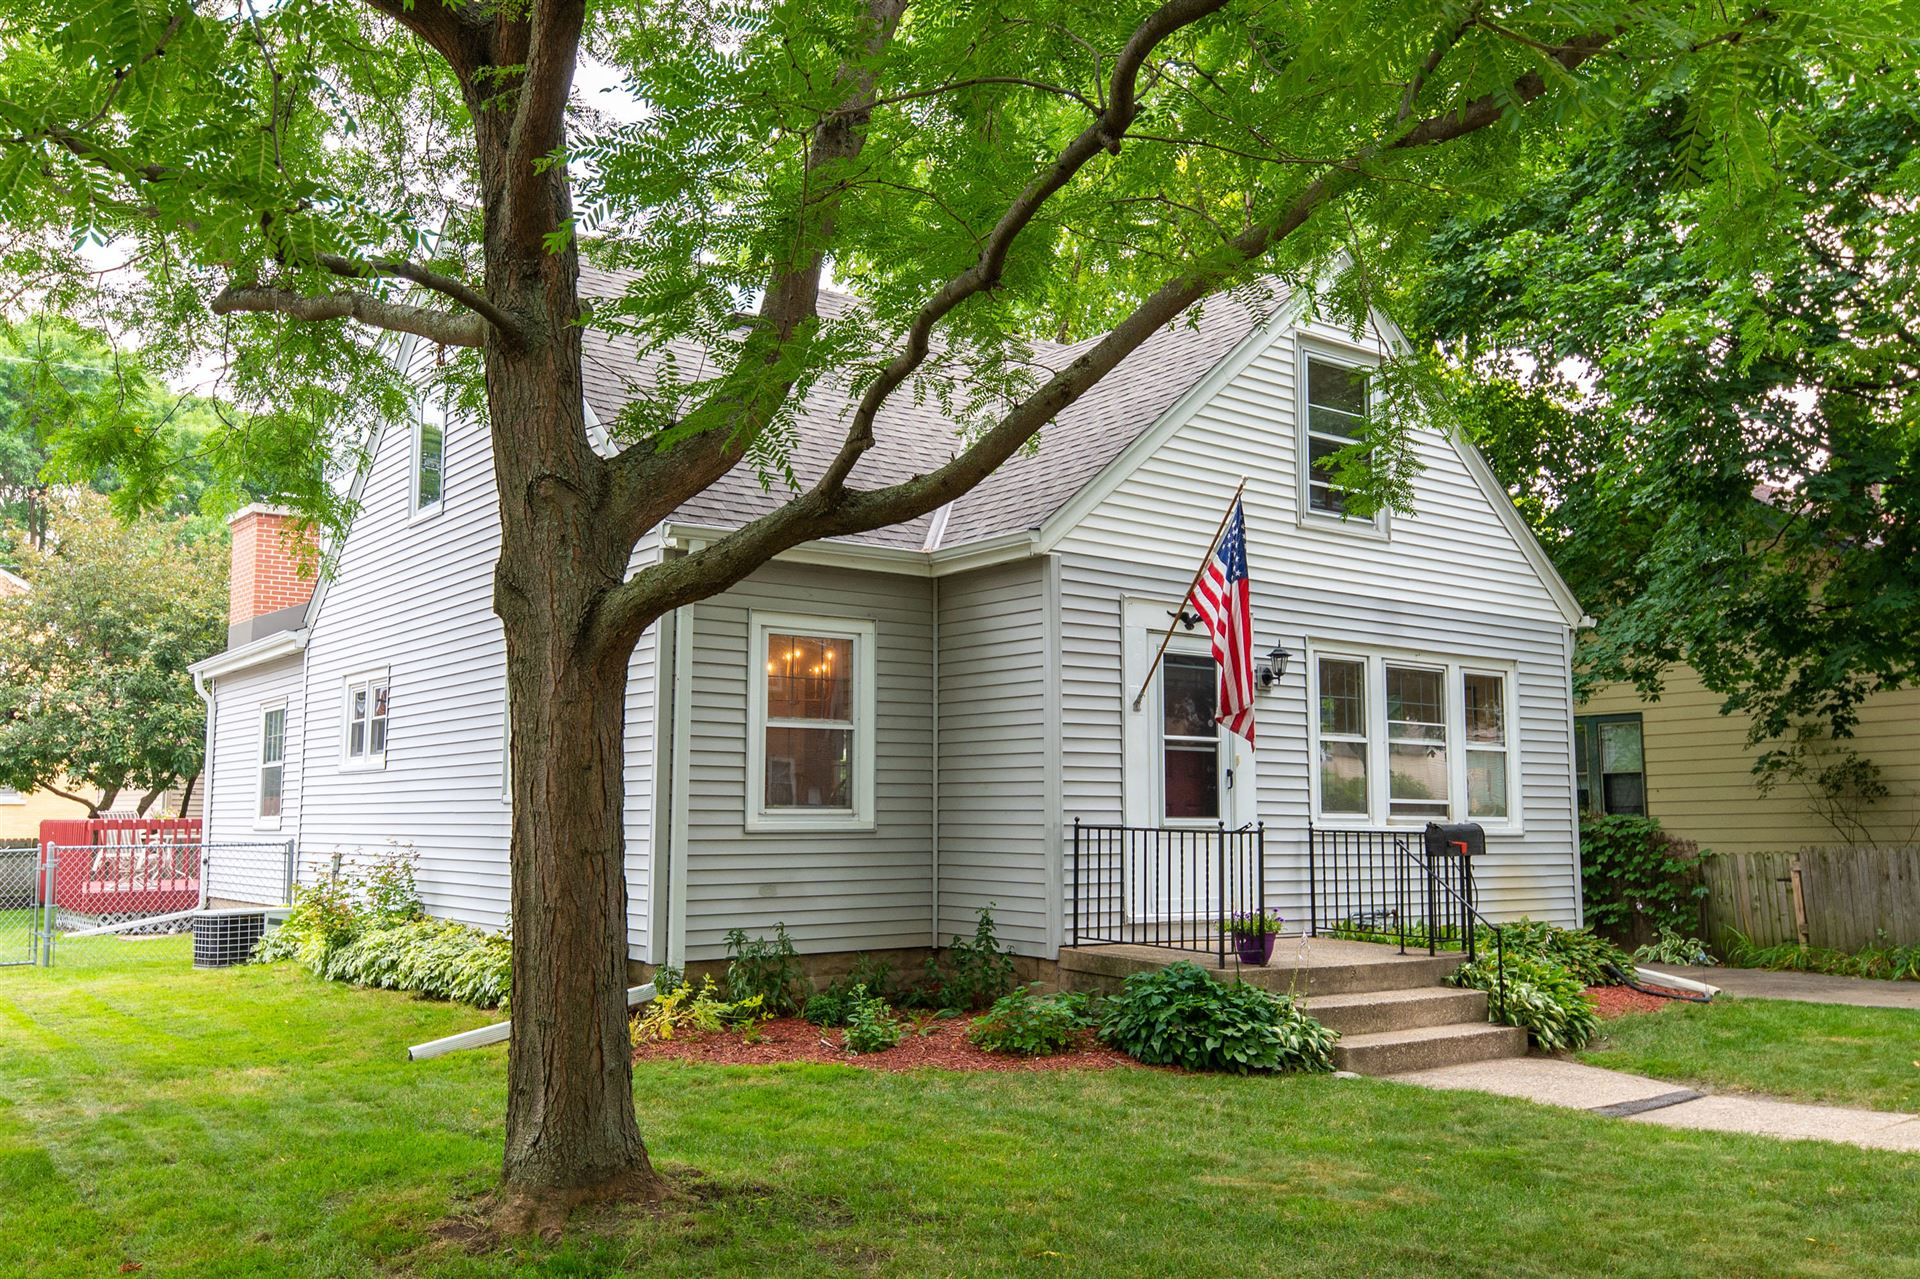 2210 N 73rd St, Wauwatosa, WI 53213 - #: 1753011